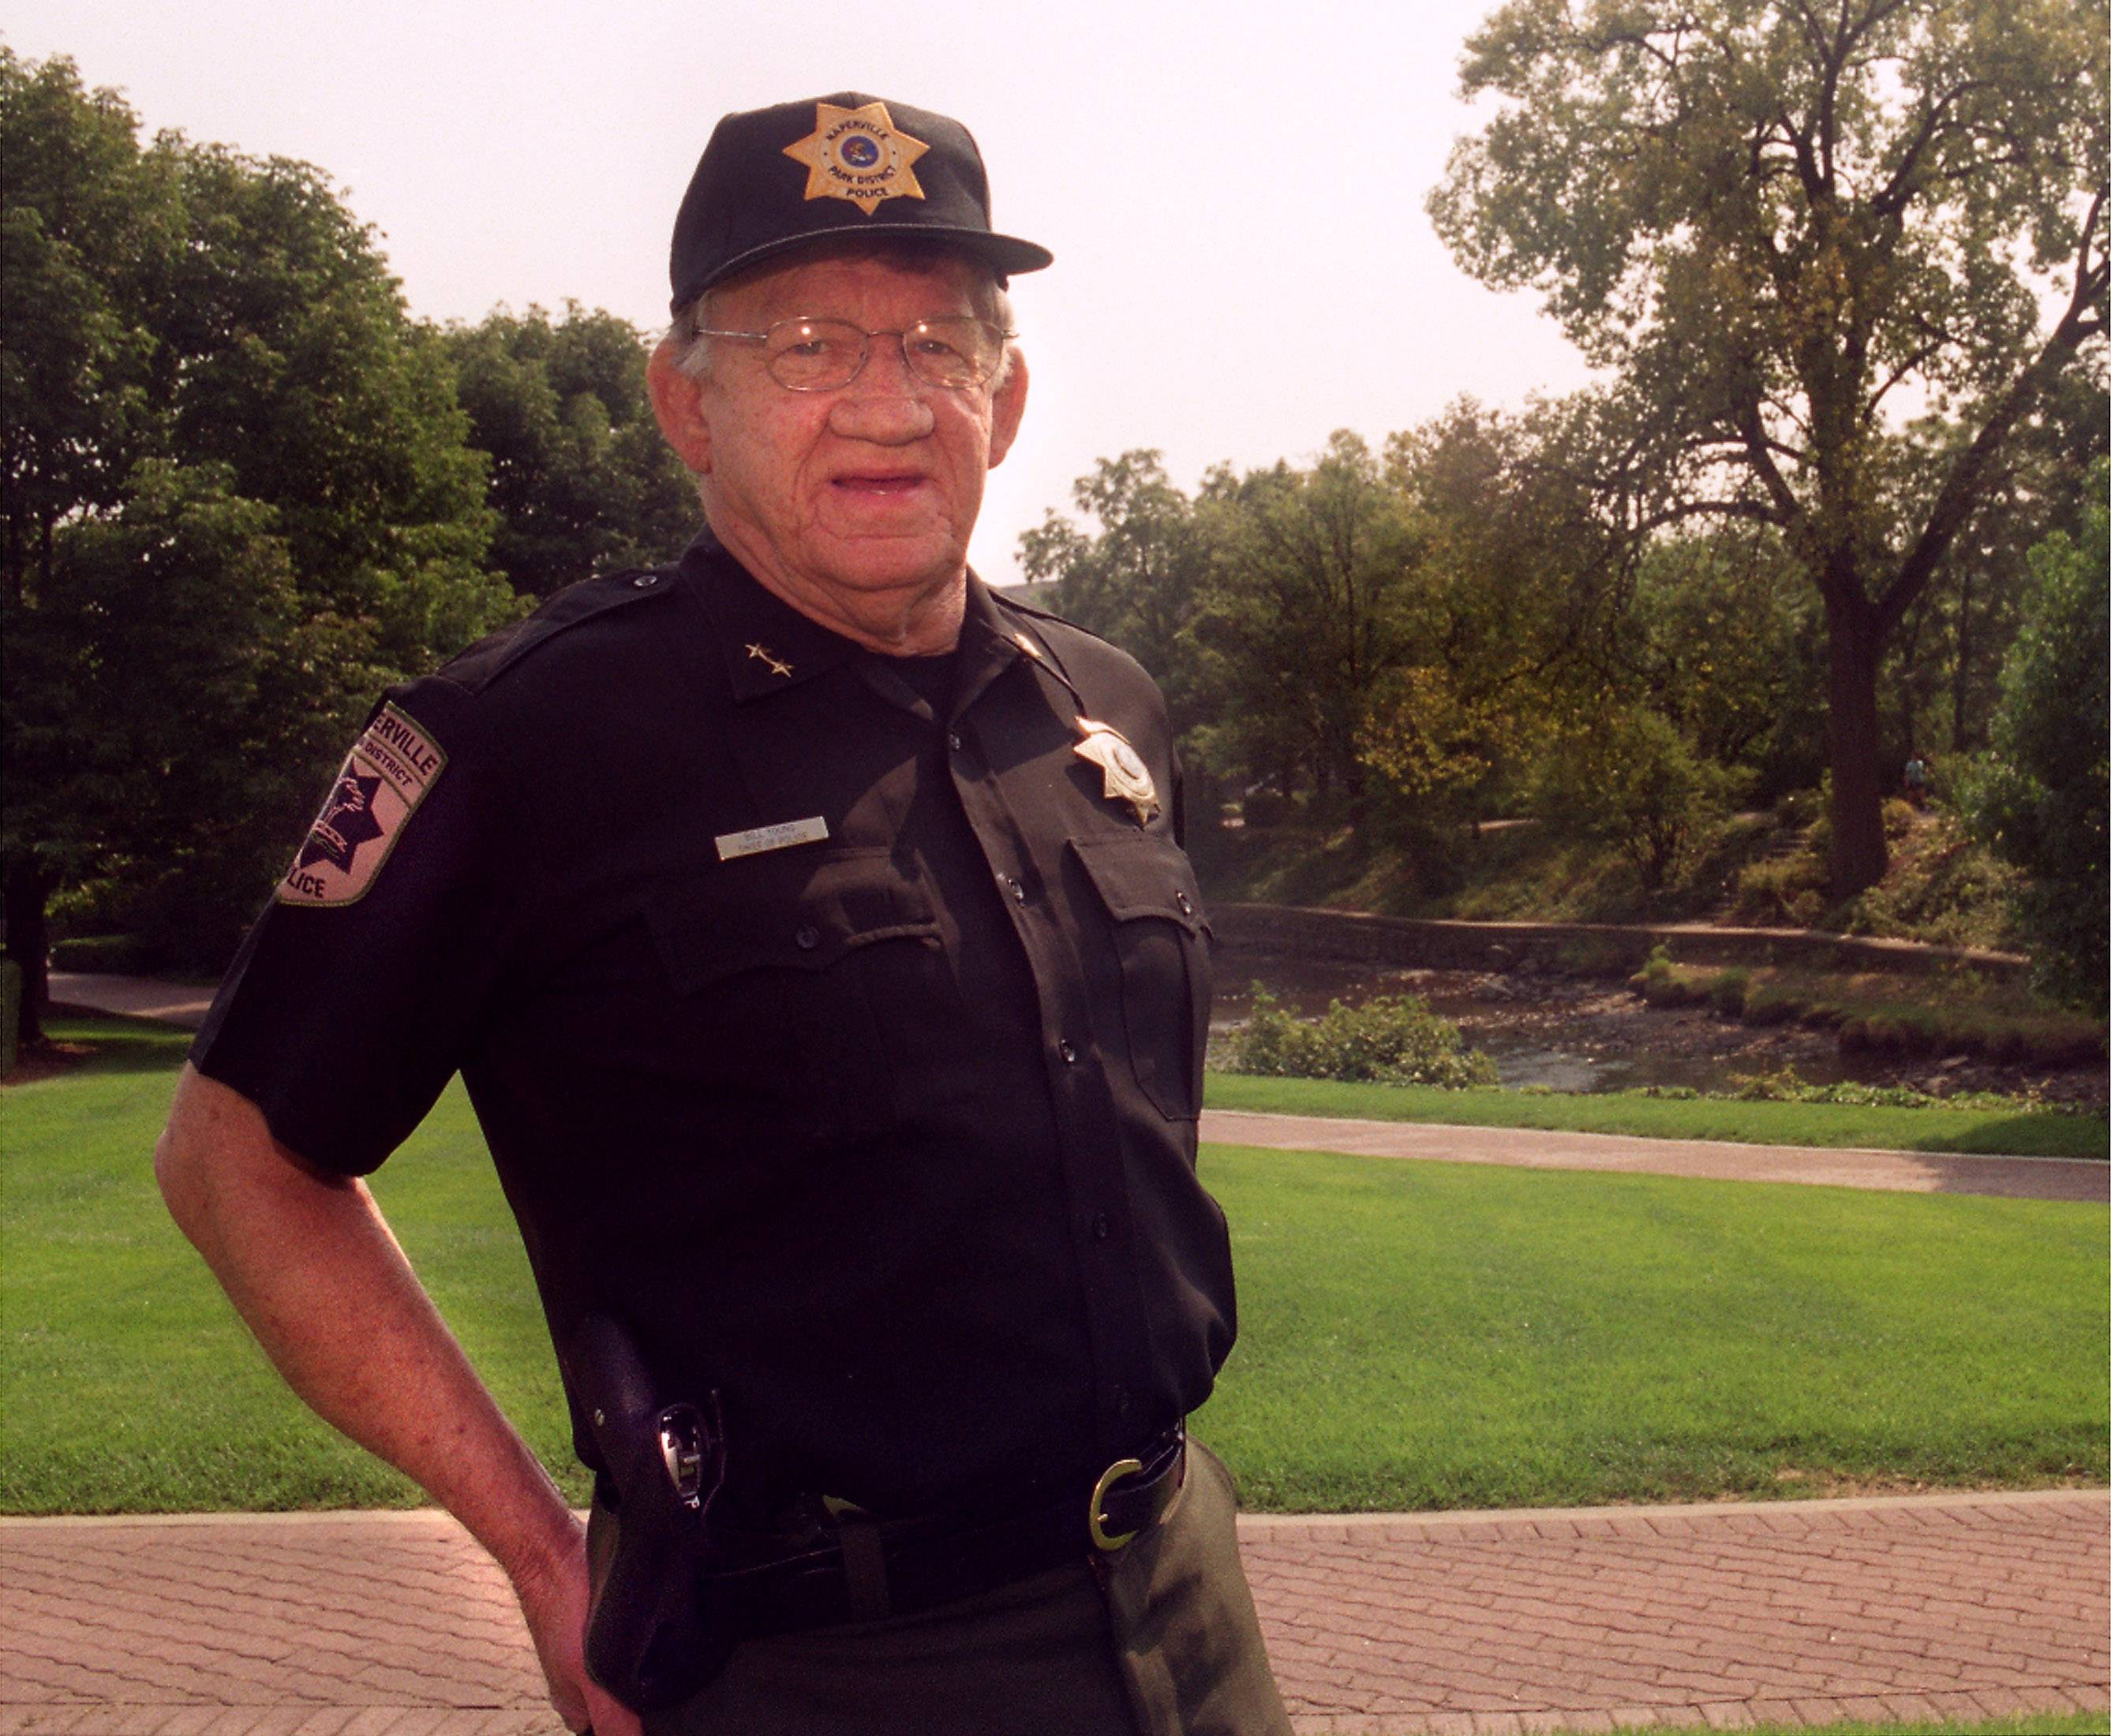 Bill Young of Naperville is being remembered for creating the Naperville Park District police force and mentoring generations of students and wrestlers as a teacher, dean and coach at Naperville Central High School. Young, seen here in 2003, will be remembered during a memorial toast June 21 at the Riverwalk Grand Pavilion.